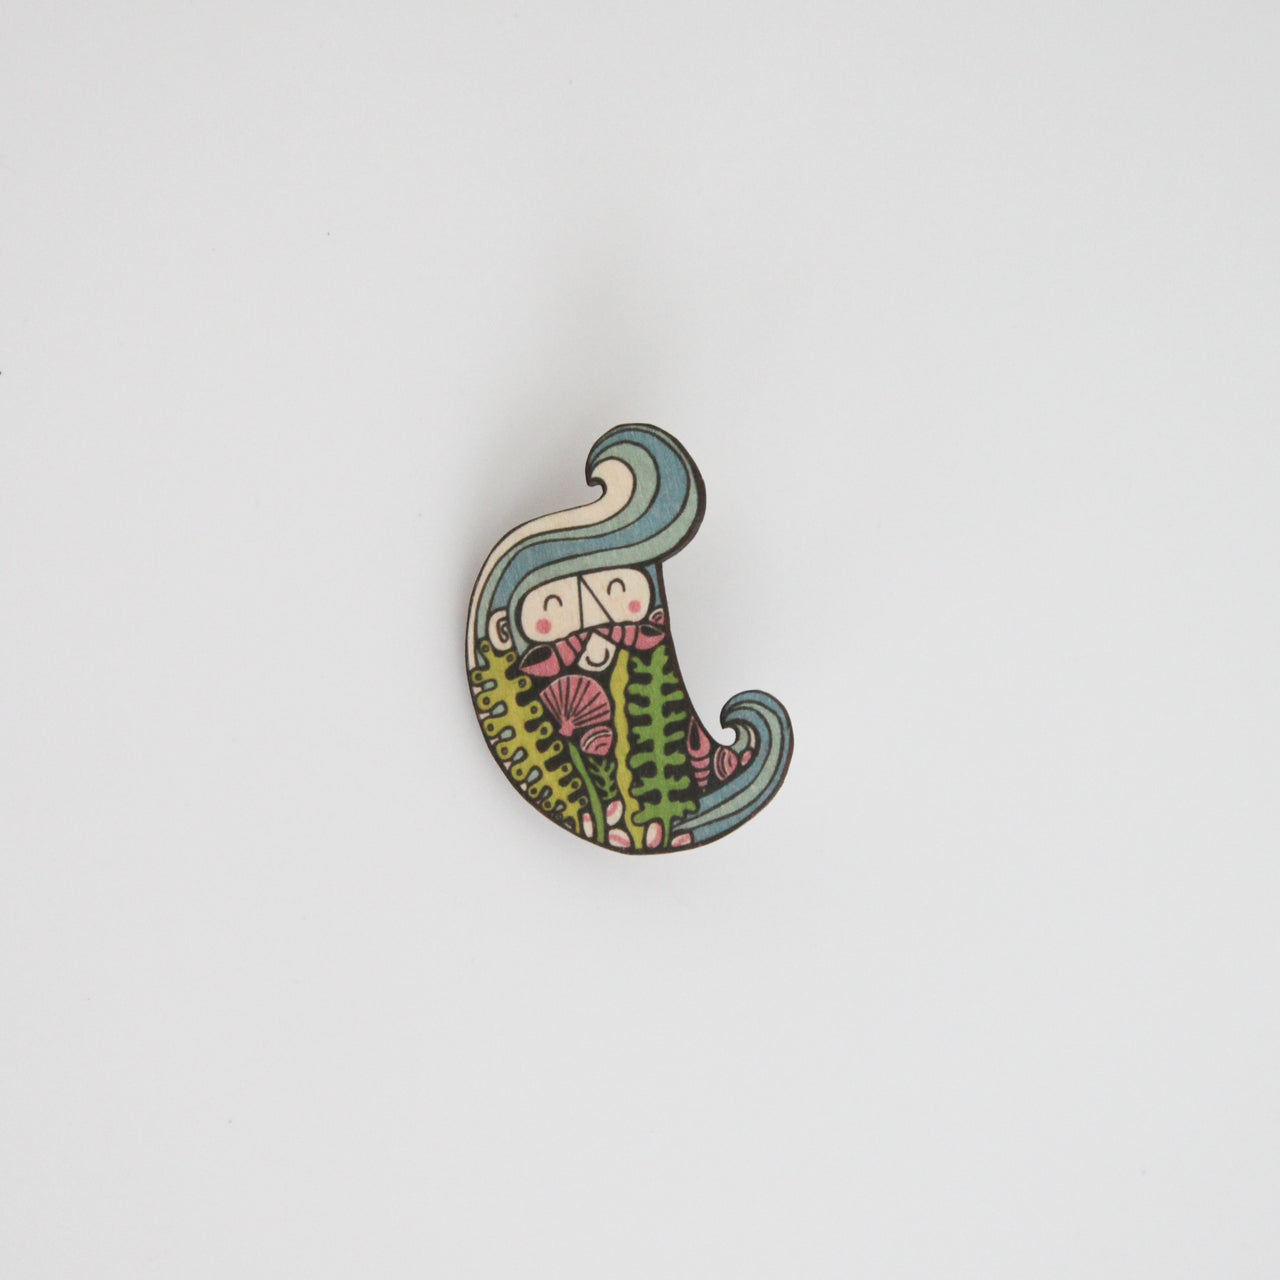 Merman Mur Brooch